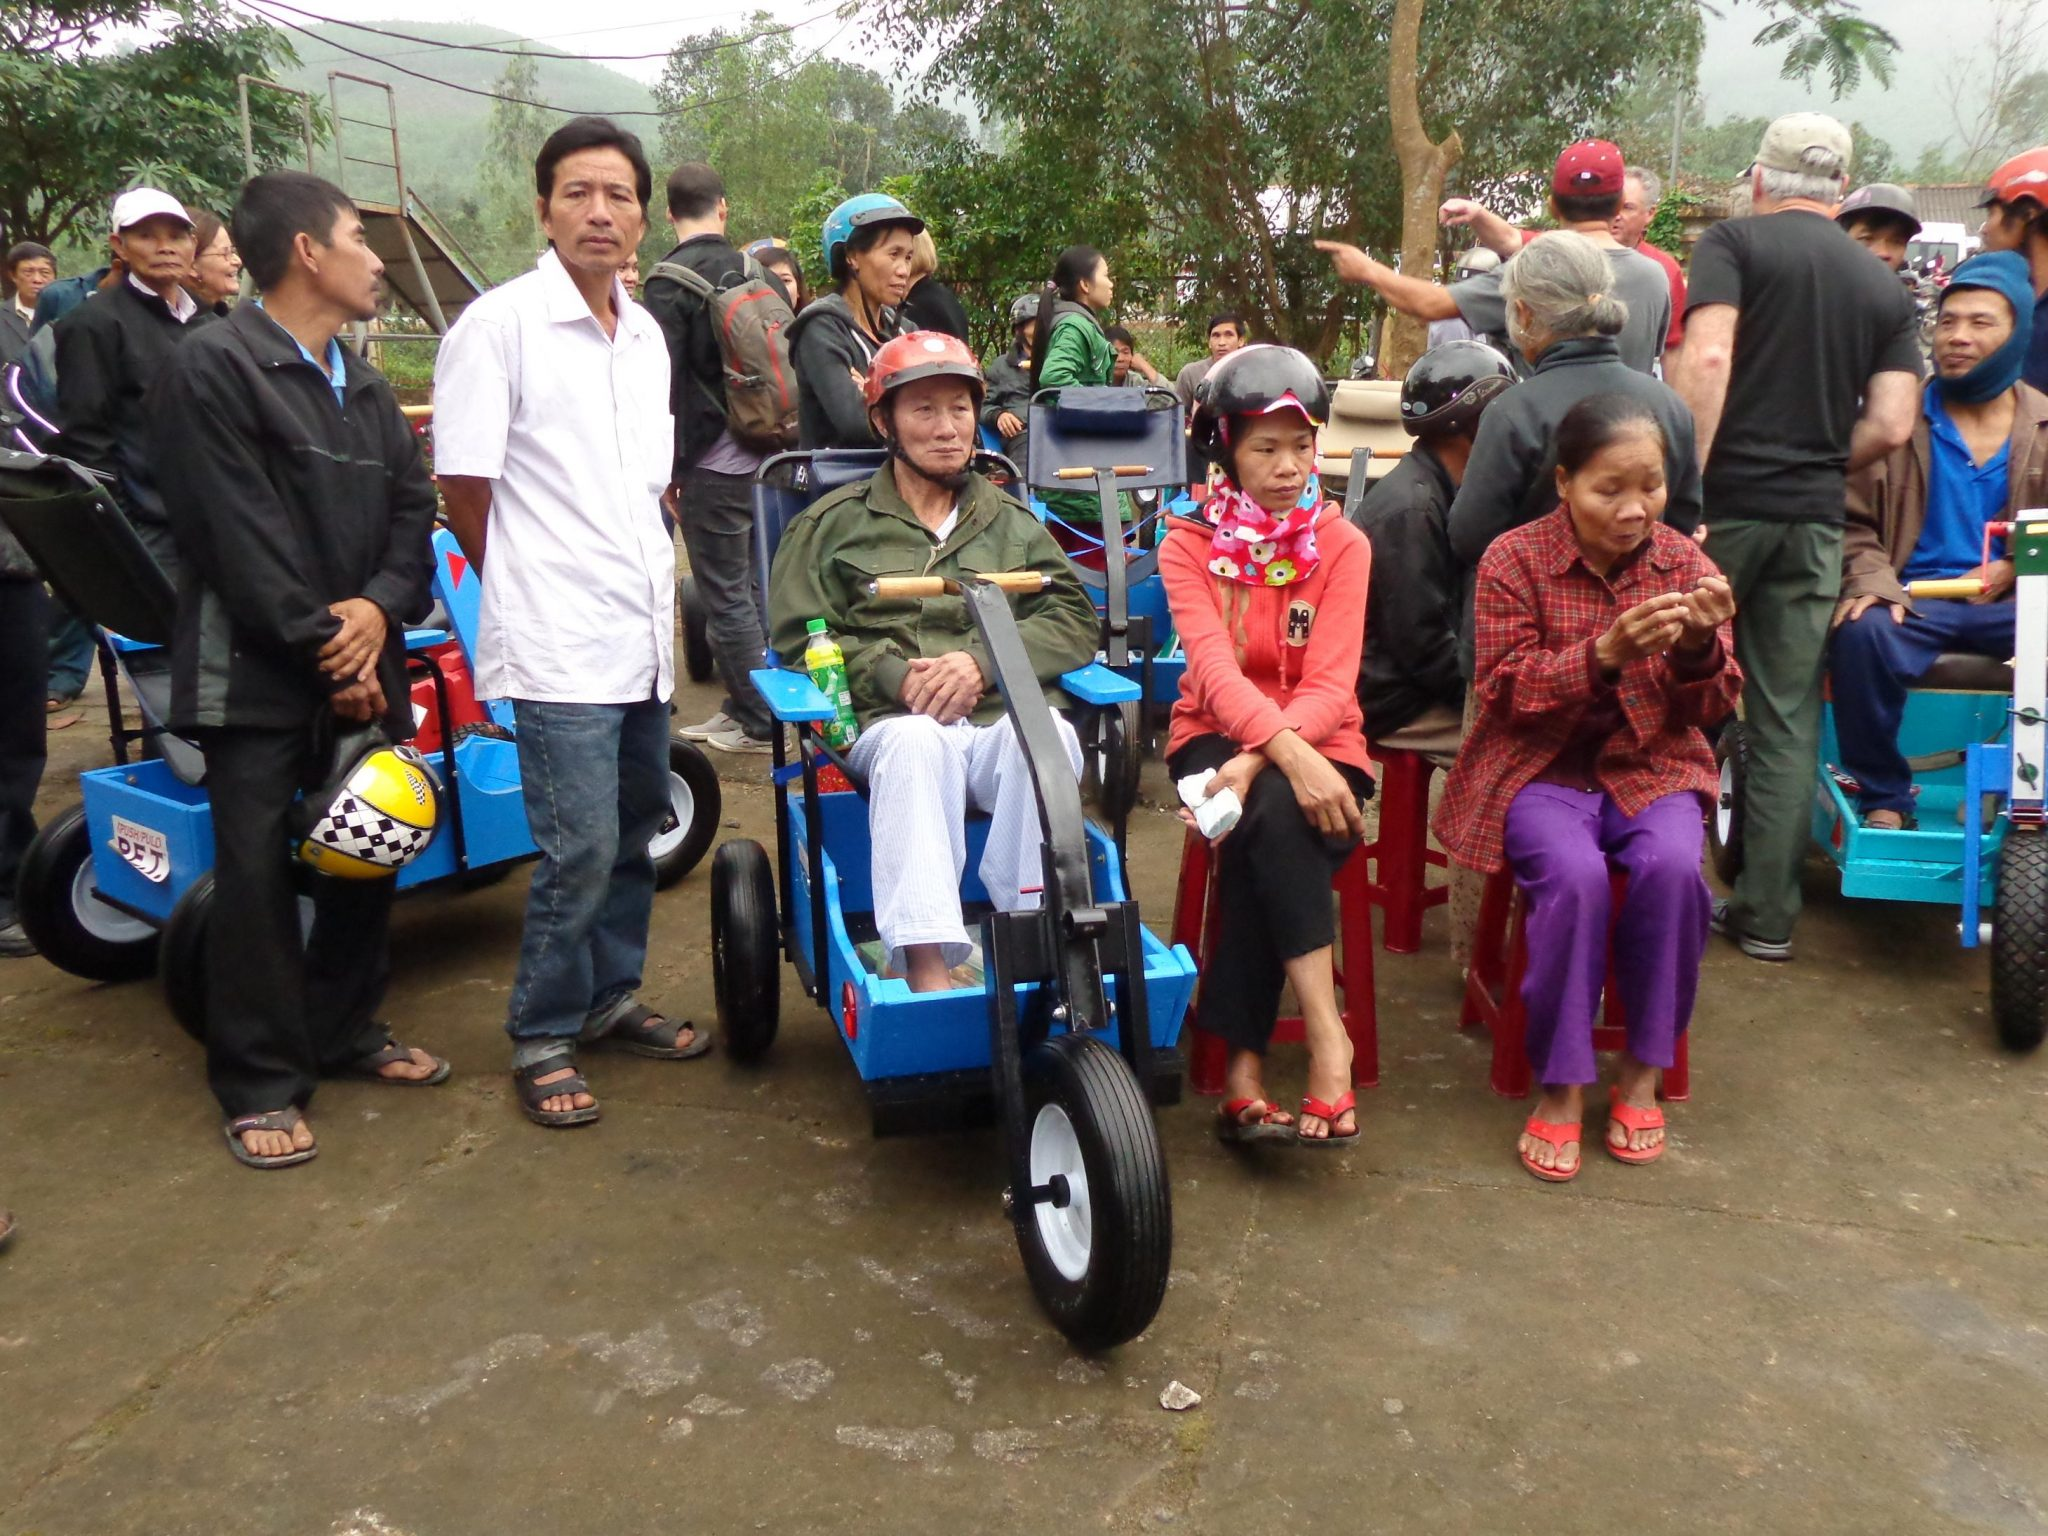 Mobilizing people in Vietnam brings joy